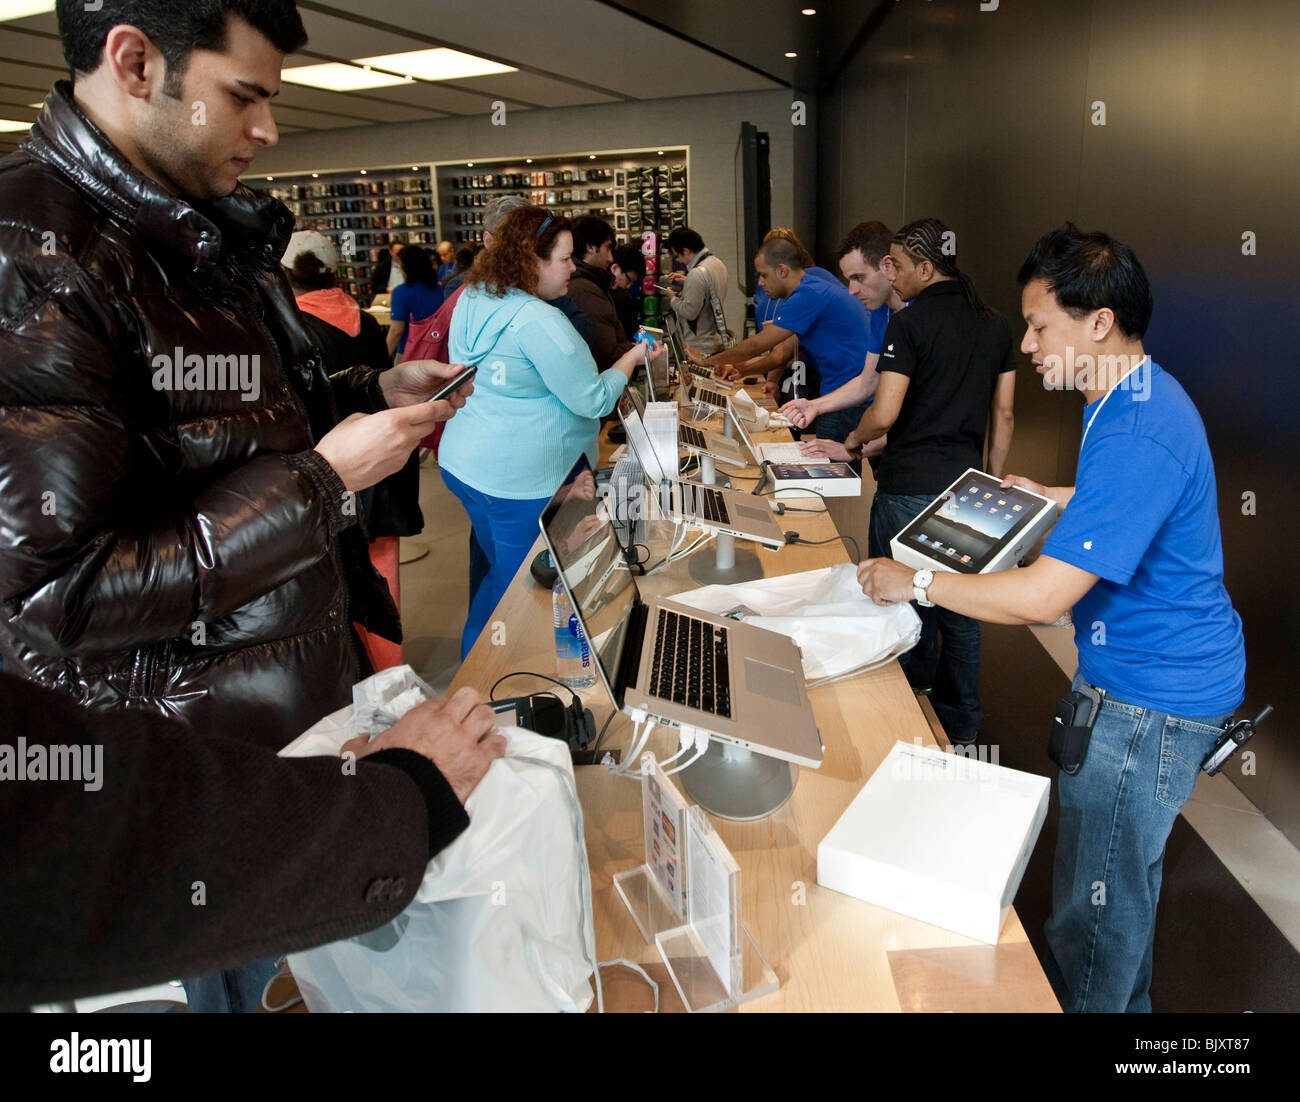 Customers buy iPads at the UWS Apple store in New York, USA, 3 April 2010. Stock Photo